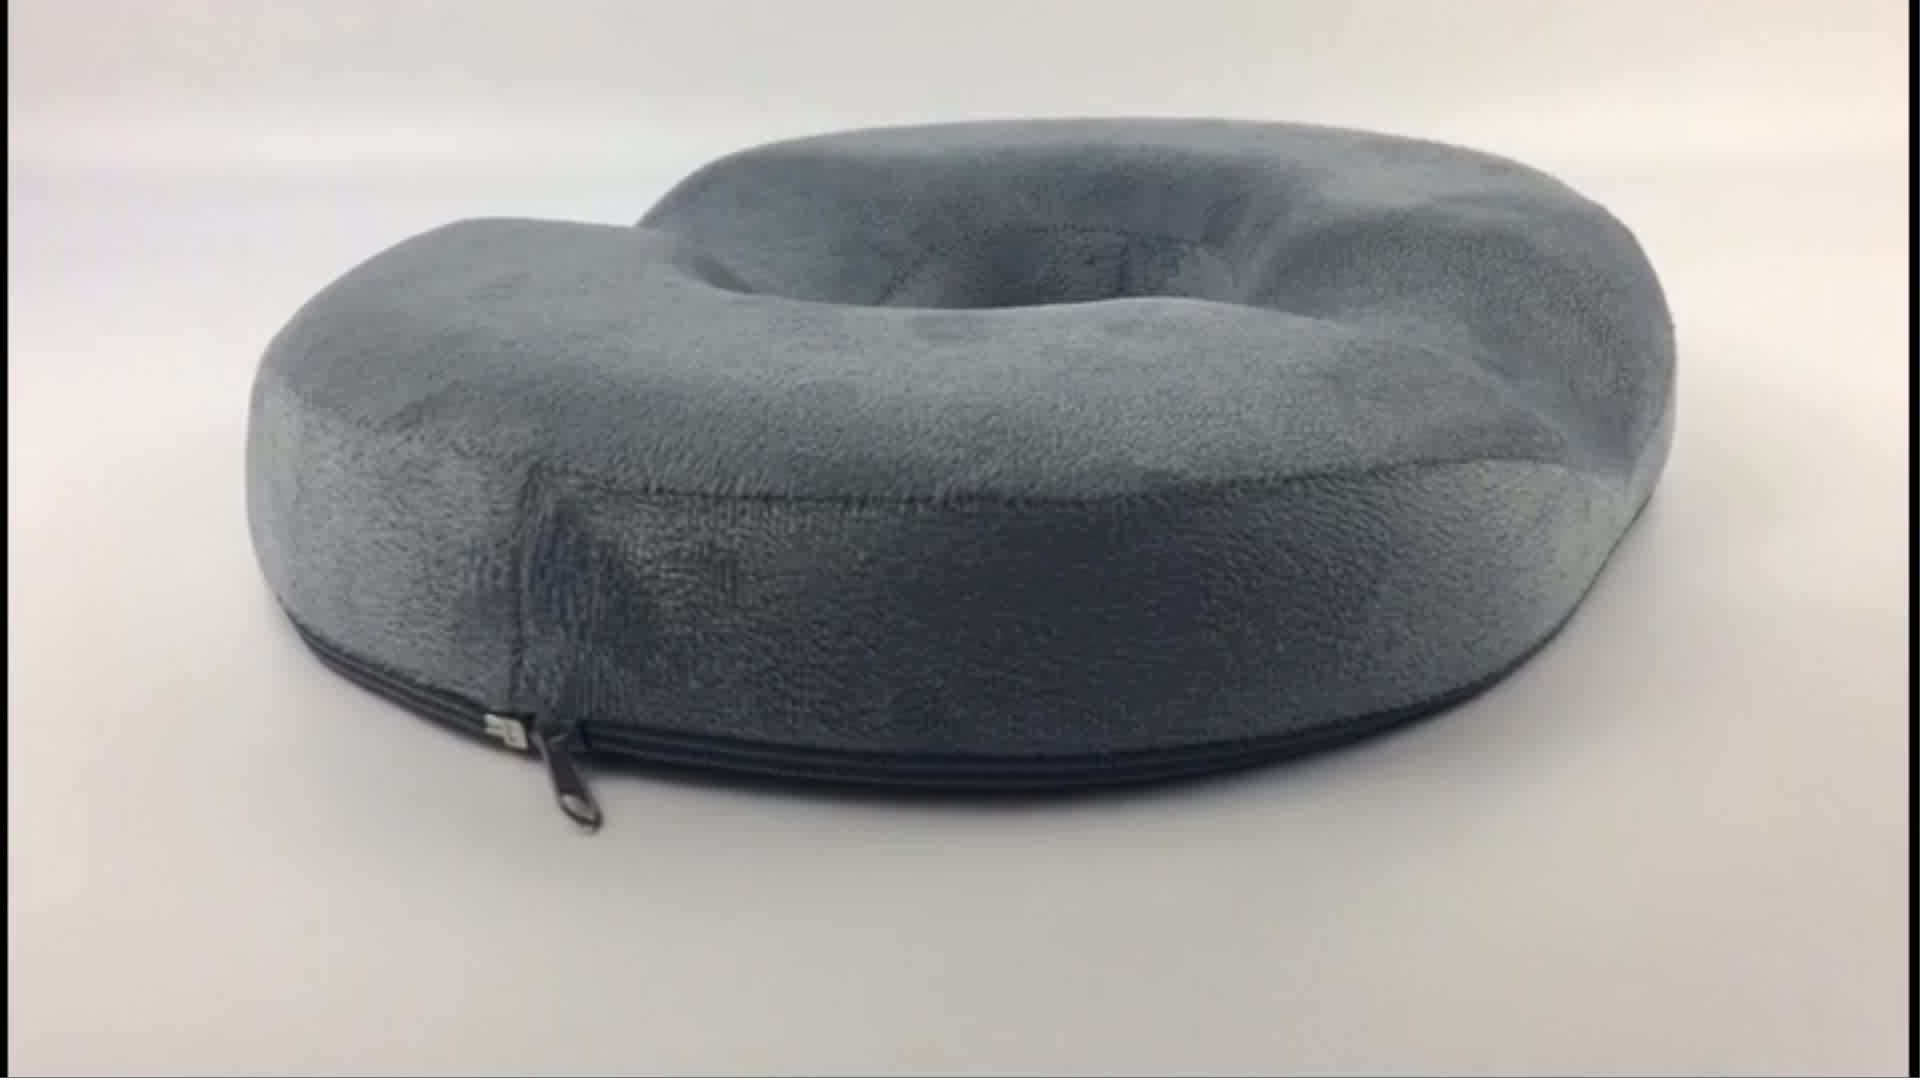 Seat Ring Cushion Relief Treatment for Hemorrhoids, Bed Sores, Prostate, Coccyx, Sciatica, Pregnancy, Post Natal Surgery